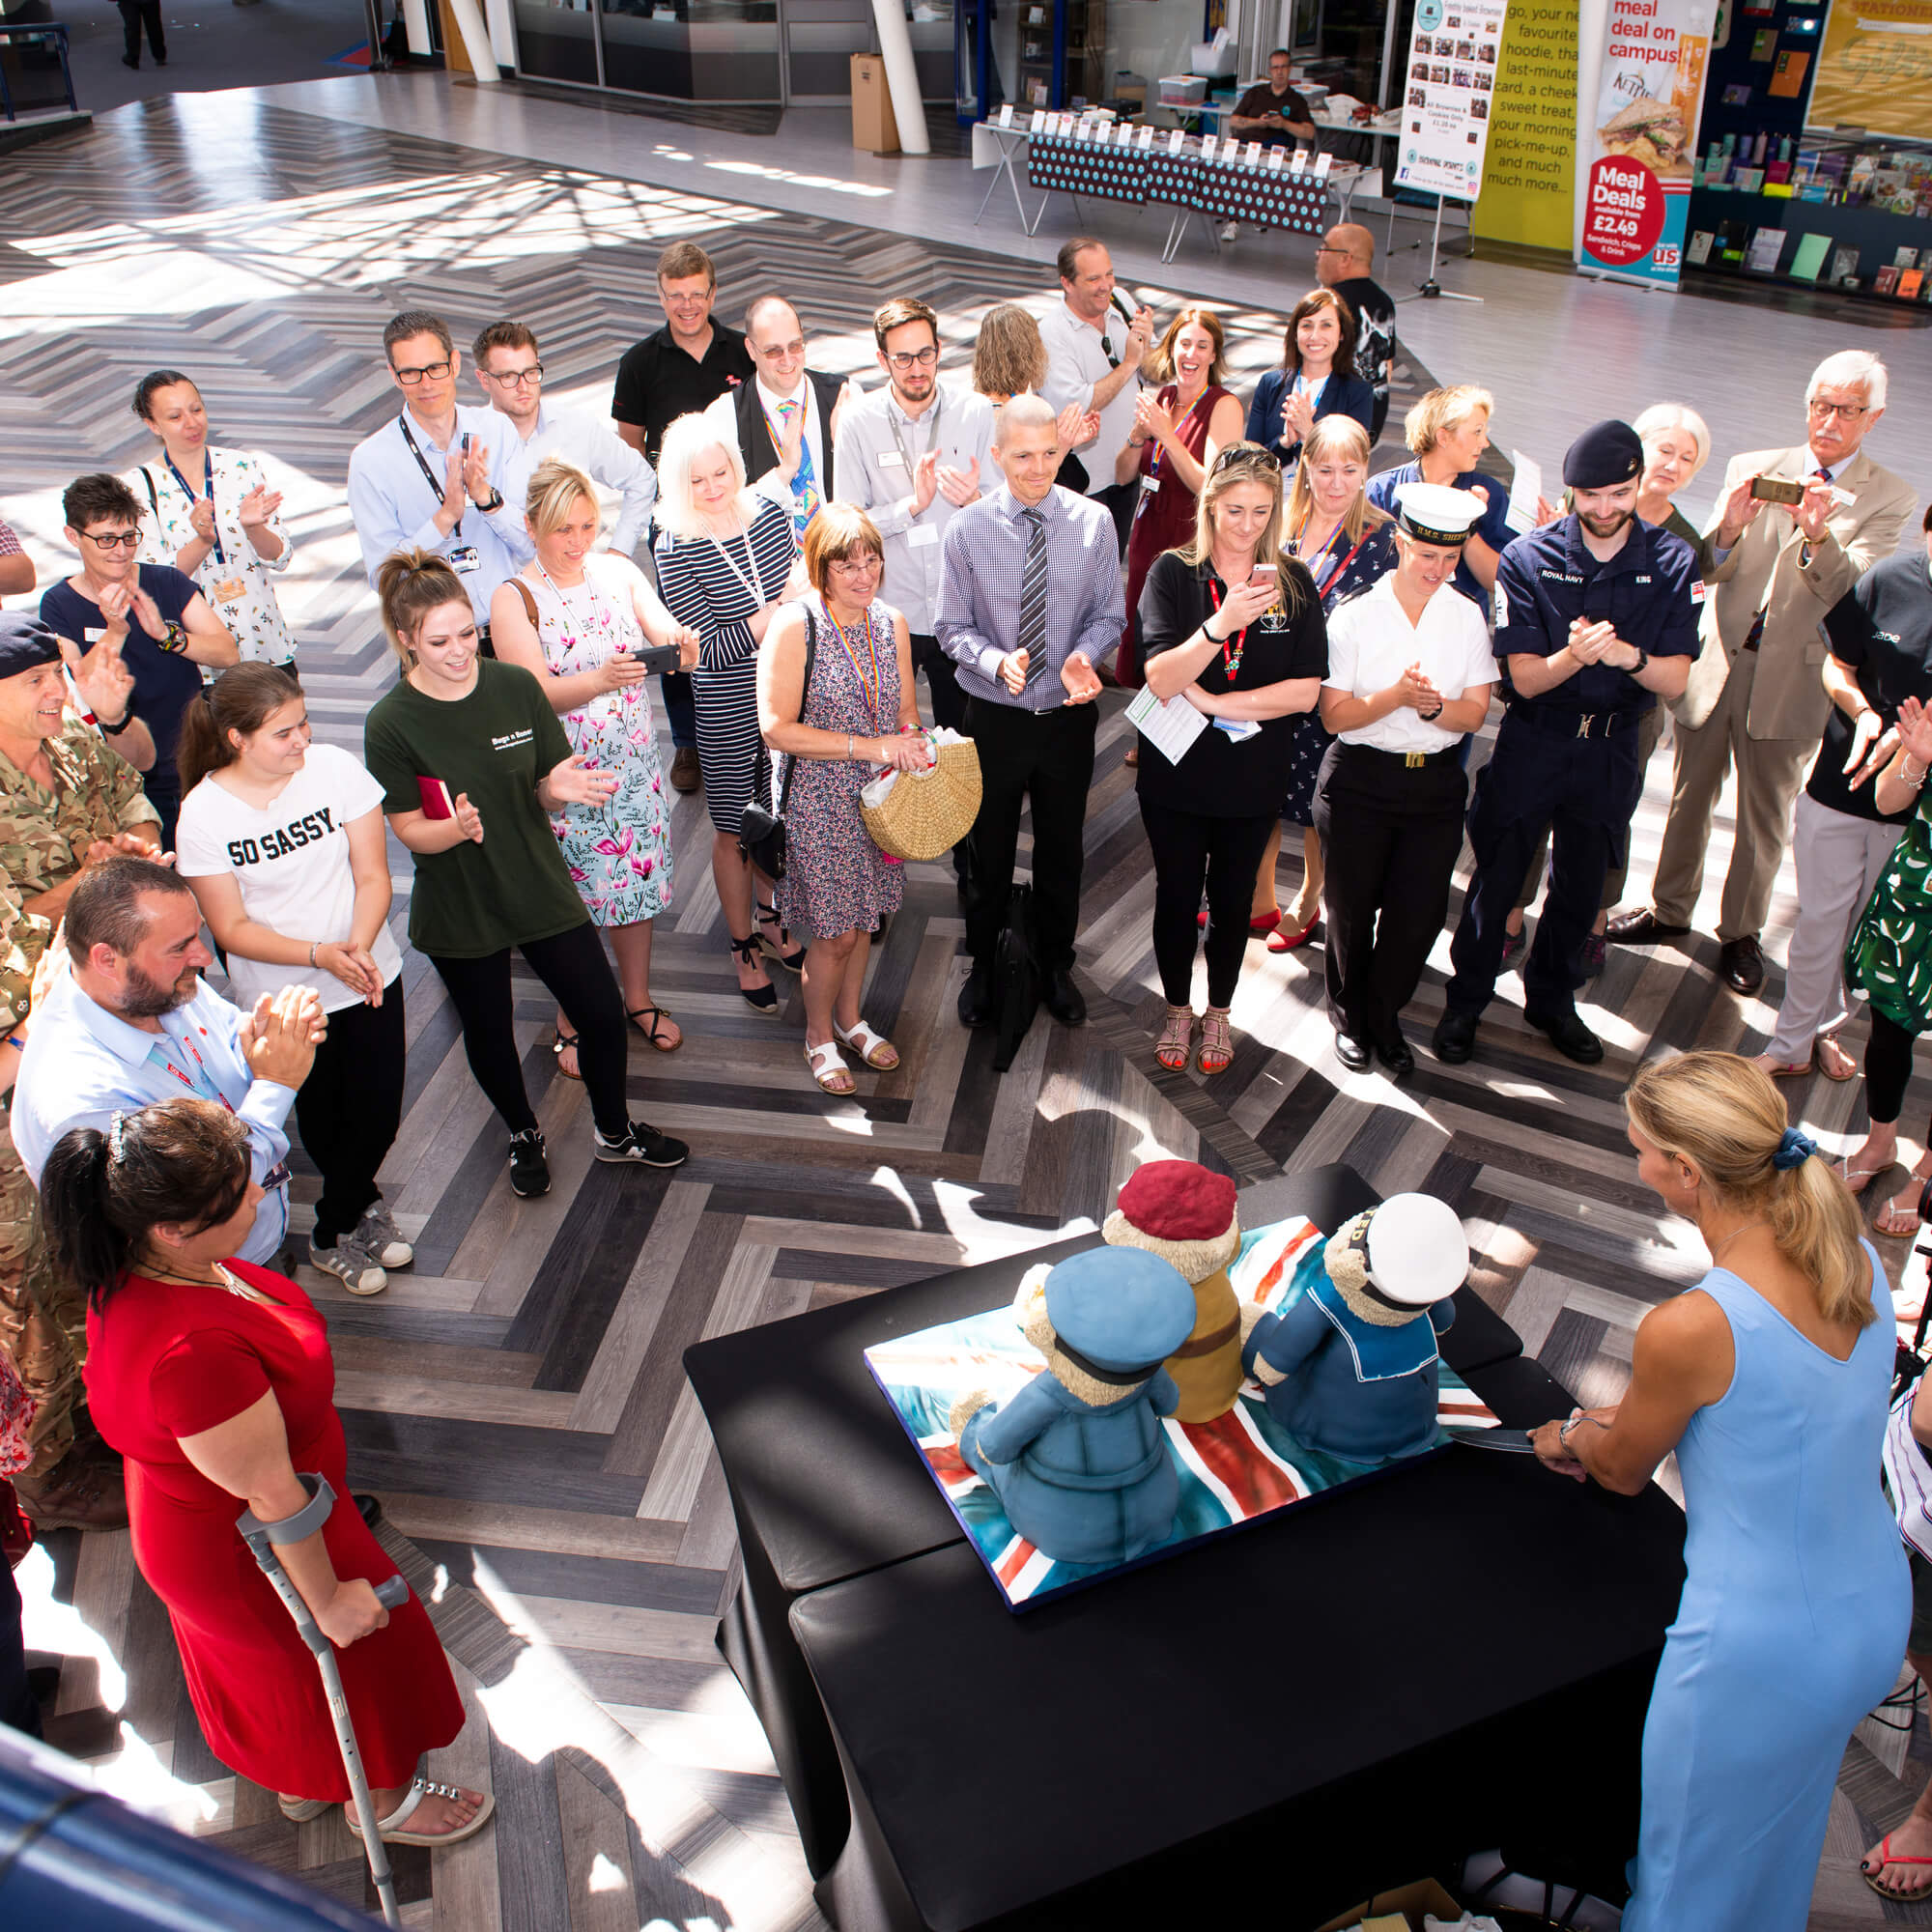 A group of people standing during the family forces event in the University's atrium